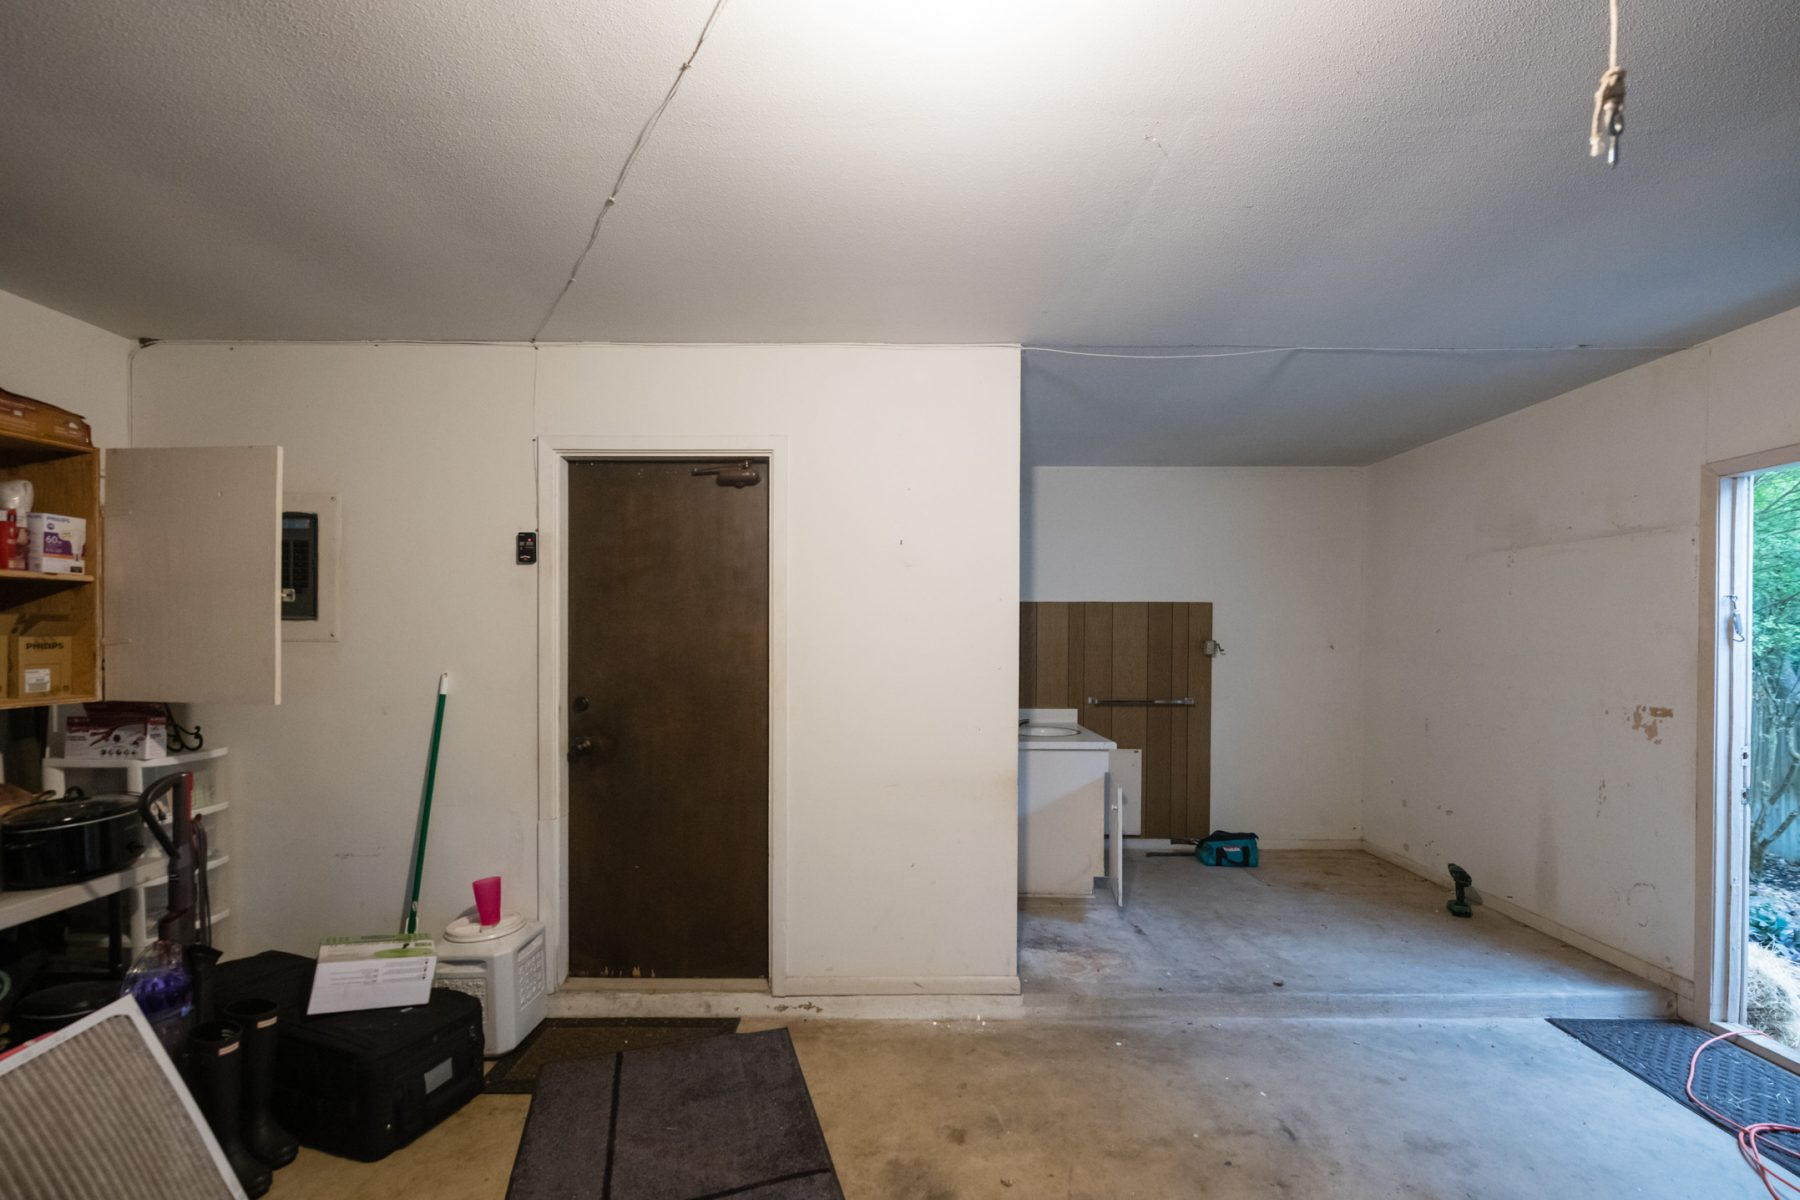 DIY Remodel MUD Room